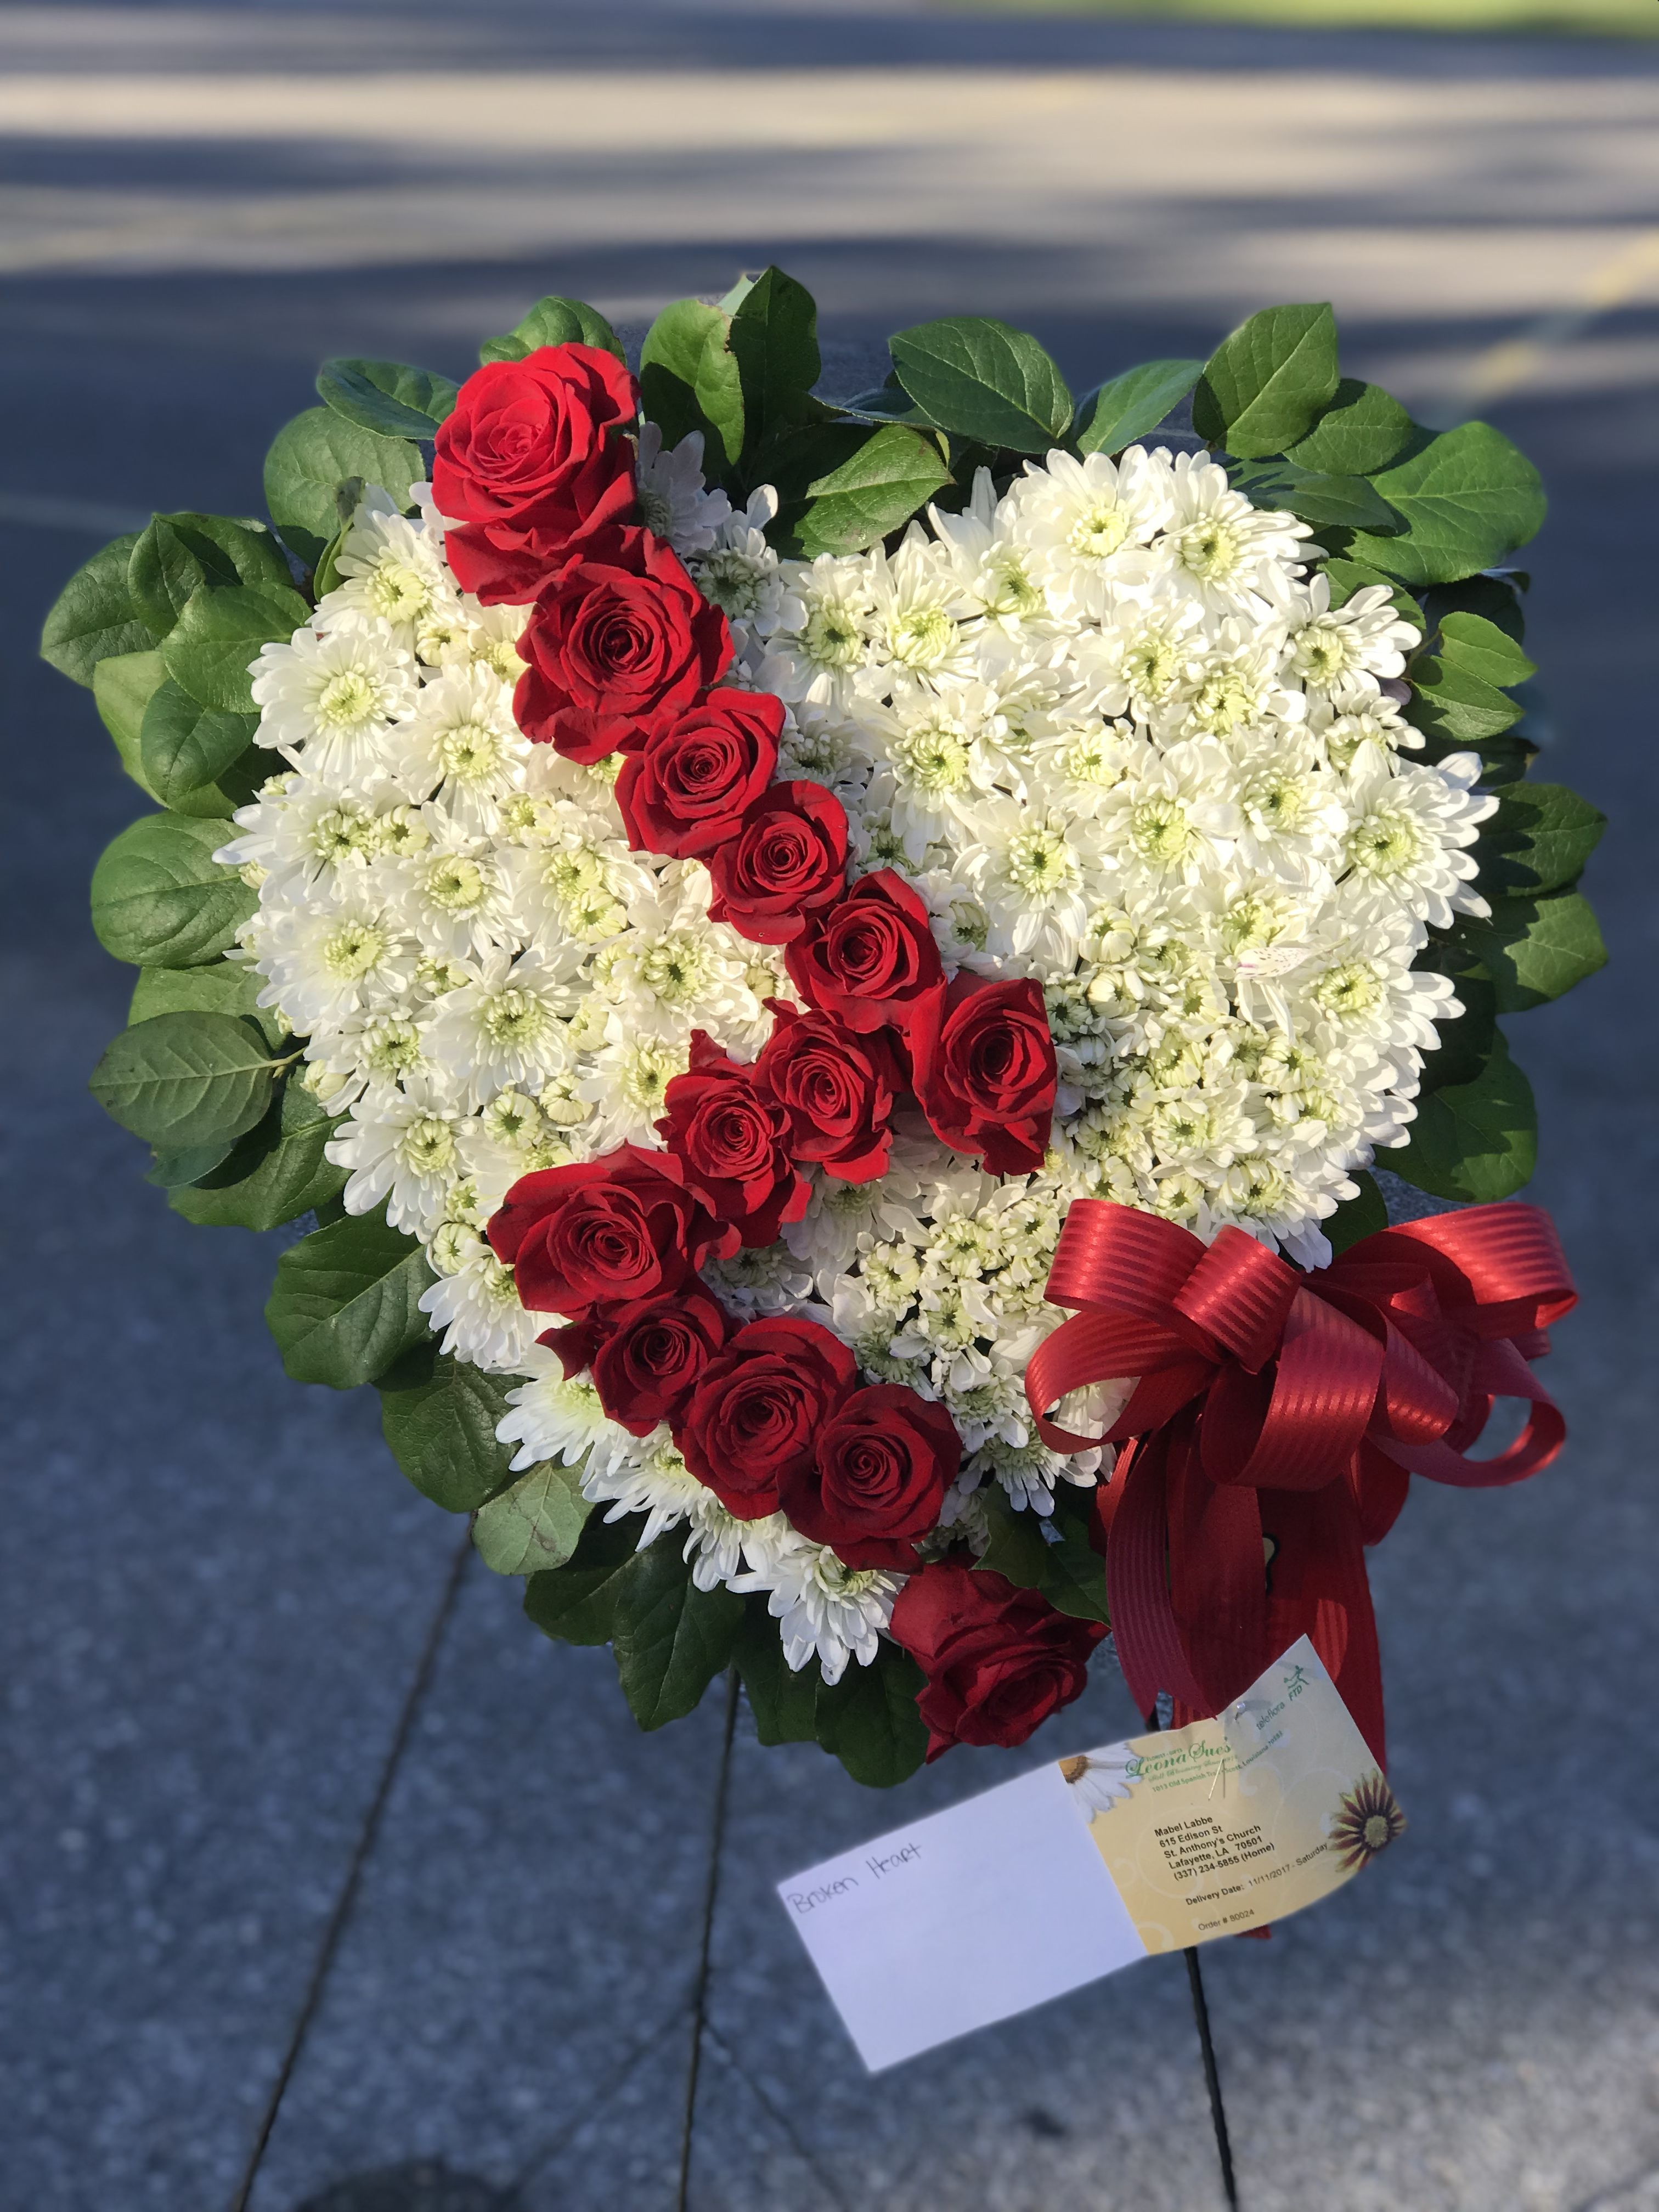 Pin by Leona Sue's Florist on Funeral Designs (With images